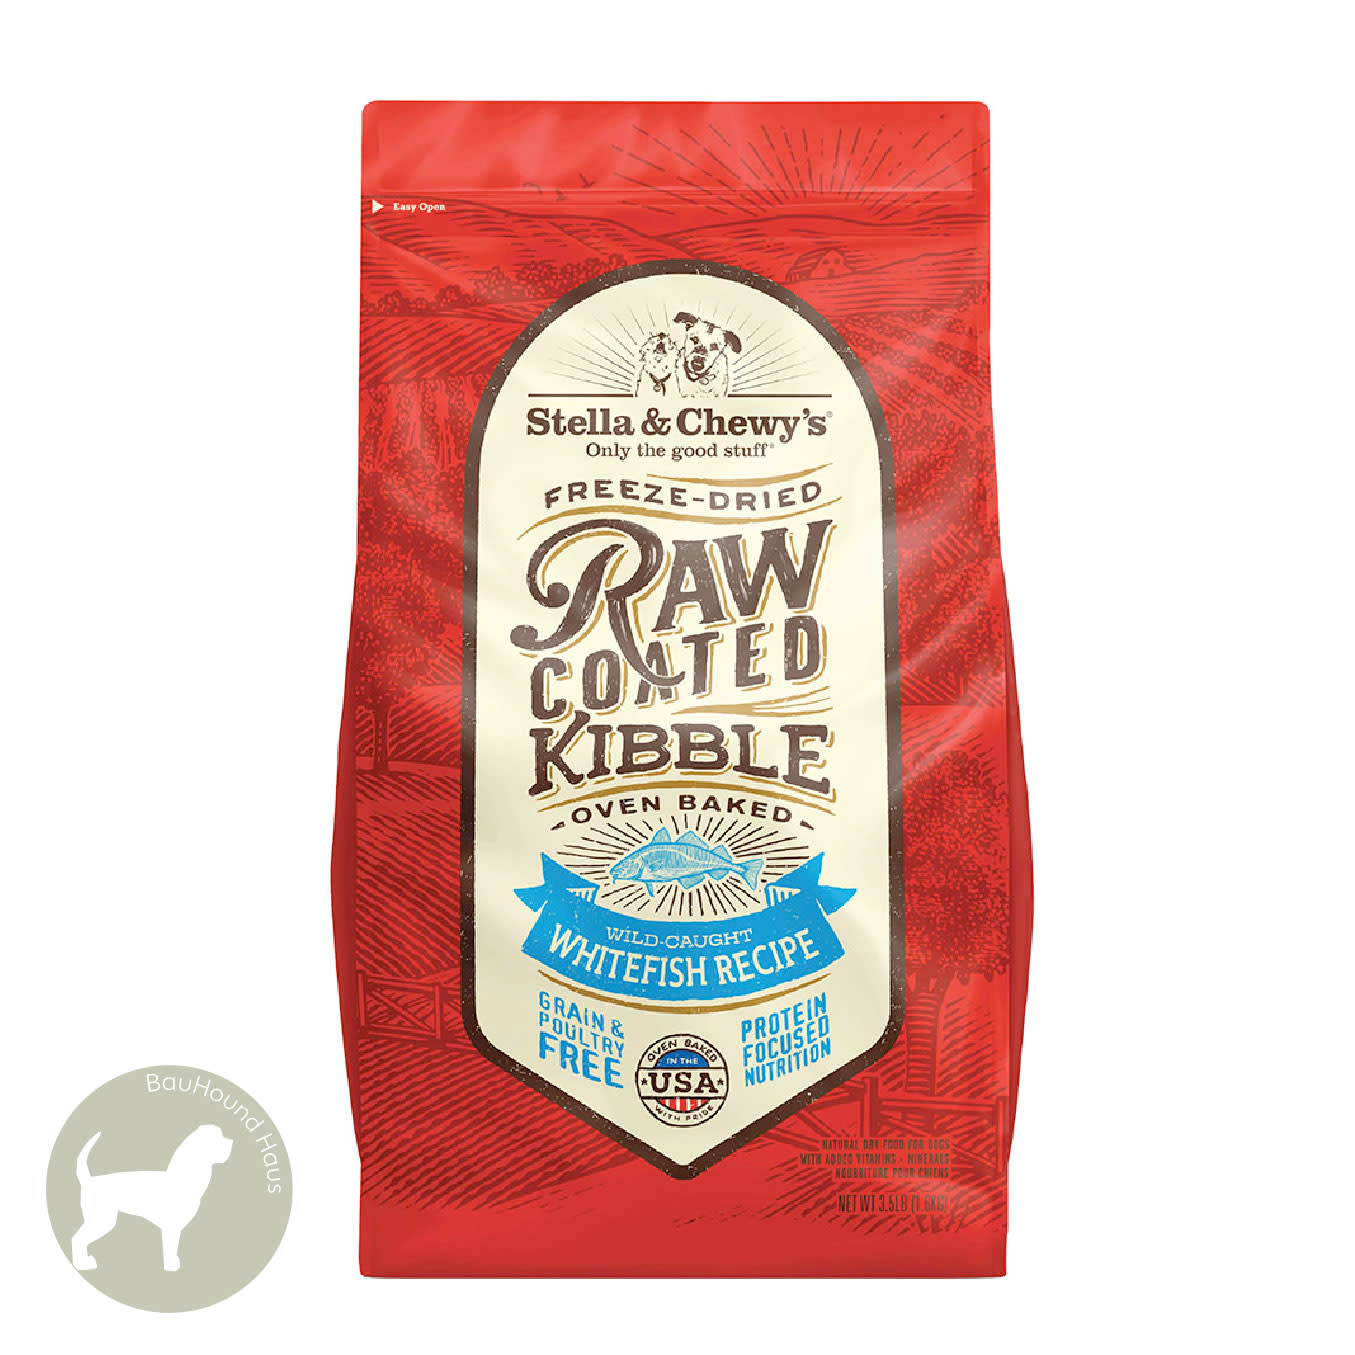 Stella & Chewy's Stella & Chewy's Freeze Dried Raw Coated Kibble Whitefish Recipe 22lb